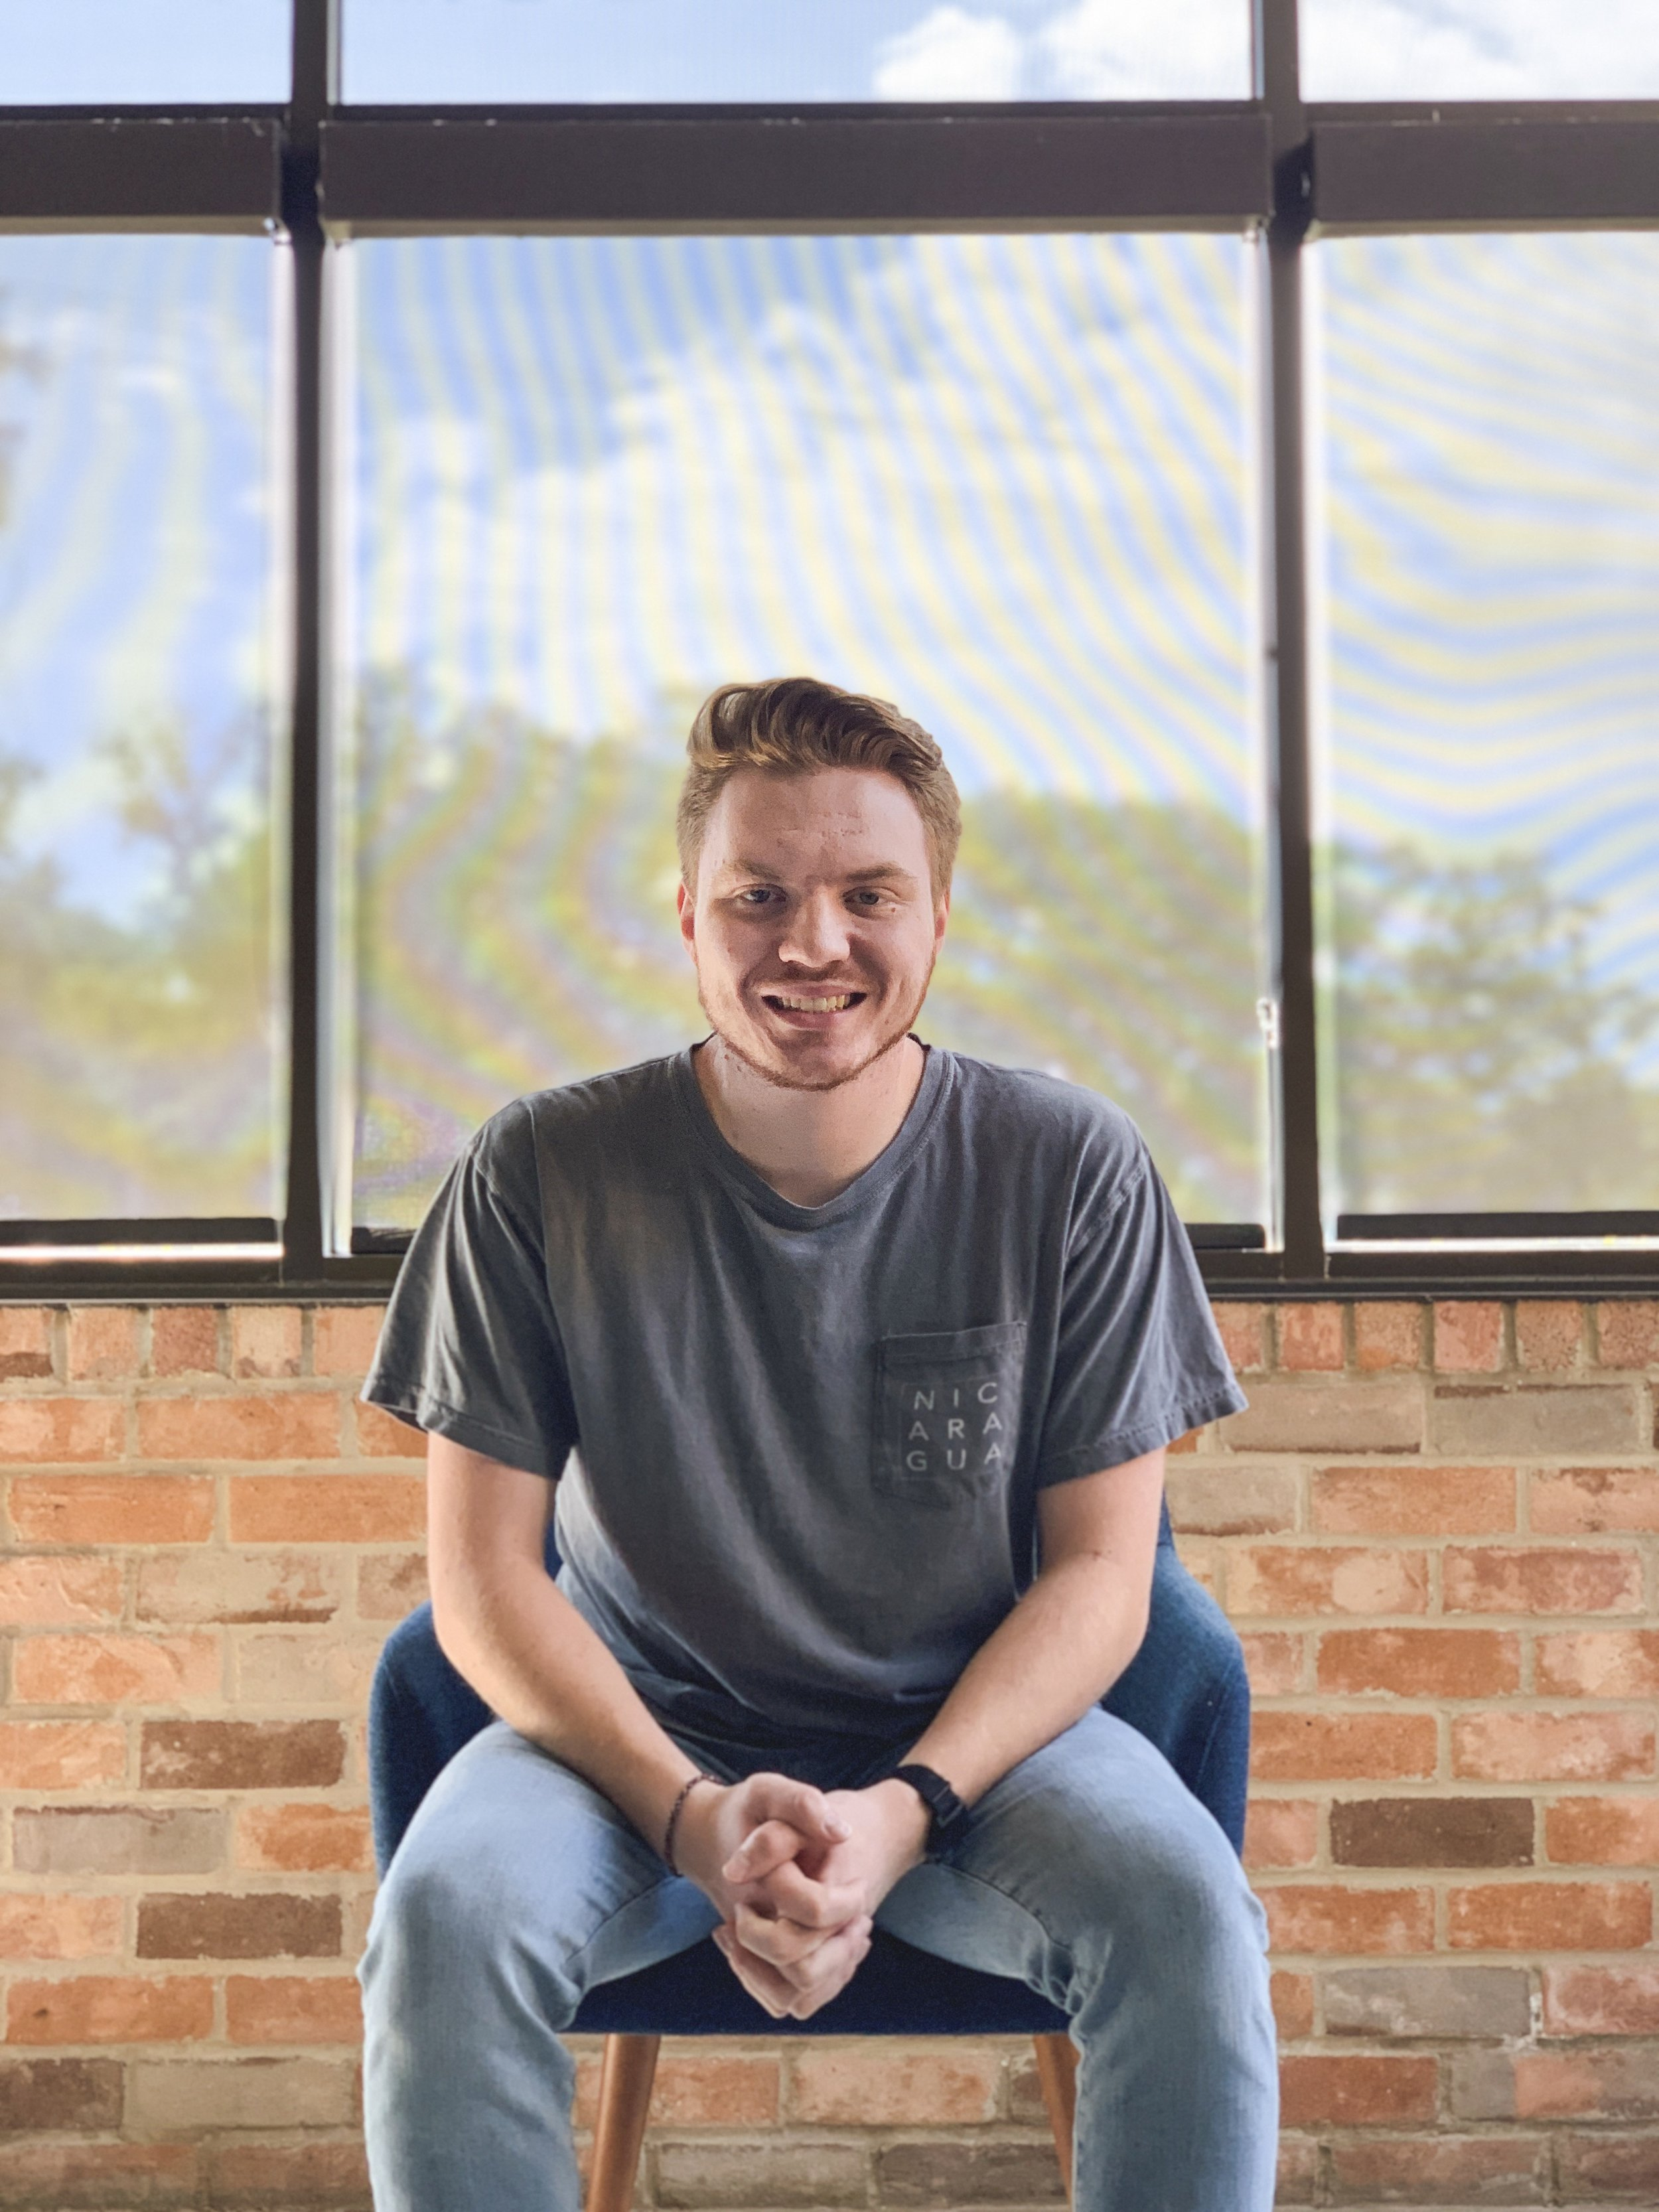 Children's director Nathan Franklin - Nathan is the fifth child of Pastors Ricky and Joni and grew up right here in Roanoke, TX. He serves as our Children's and Communications Director. He has a passion for both children's ministry and missions. He spent a year in Central America as a missionary, working with a ministry called King's Castle that ministers to children. While there, he developed a love for missions, and learned Spanish. Currently, he attends SUM Bible College and Theological Seminary where he is getting his Bachelor of Science in Biblical Studies. You can often find him hanging out in a coffee shop with friends or chasing new experiences.